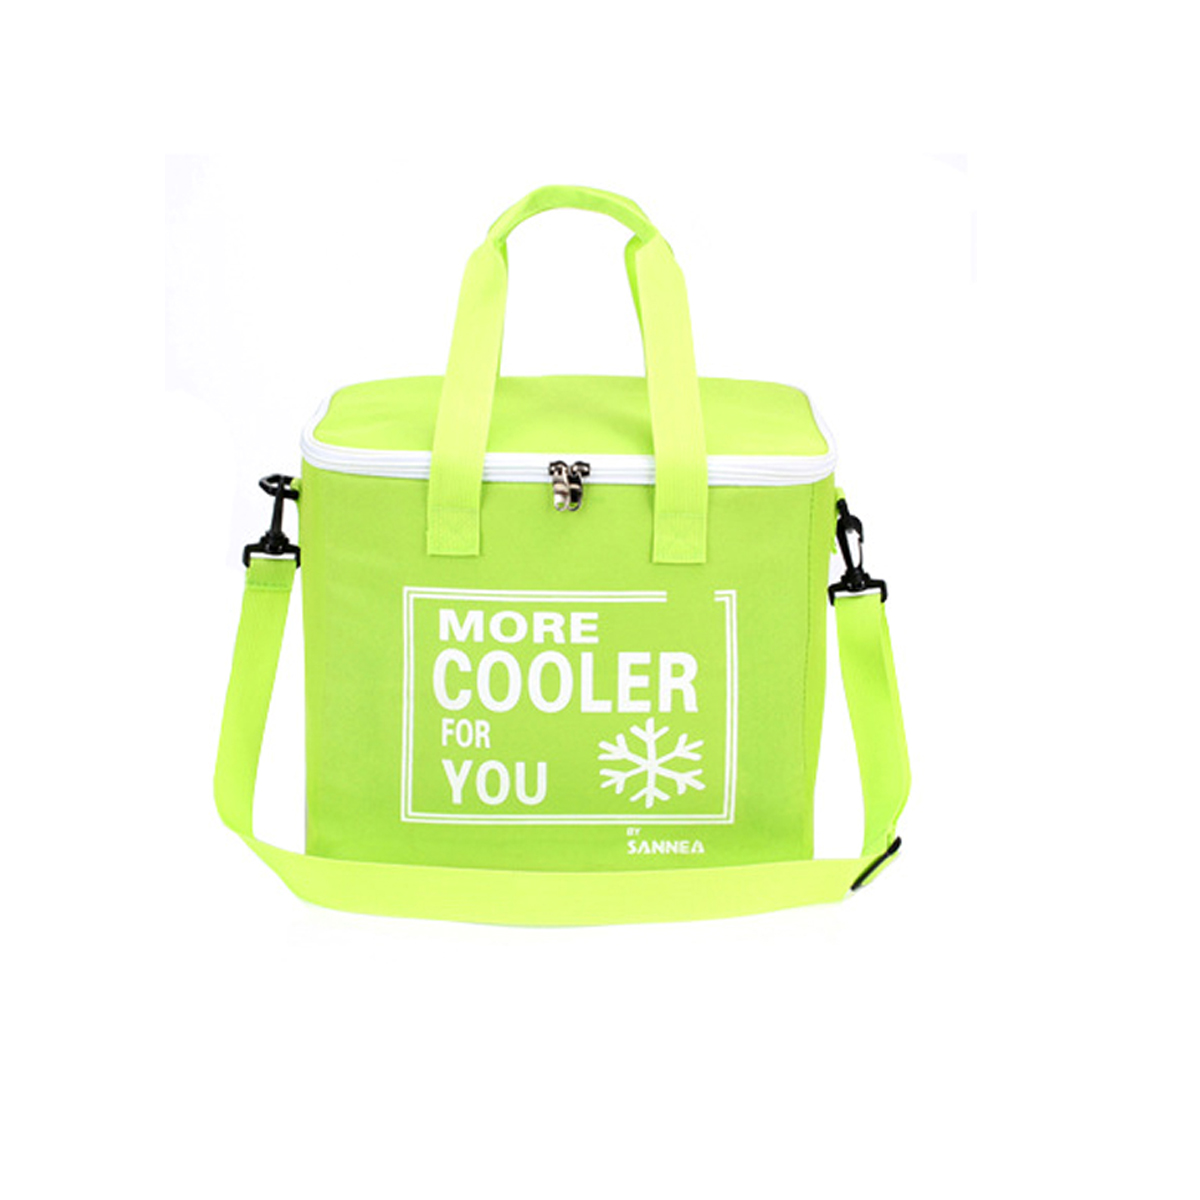 New 1pcs Thermal Cooler Insulated Lunch Box Tote Storage Picnic Waterpr Bag R4B4